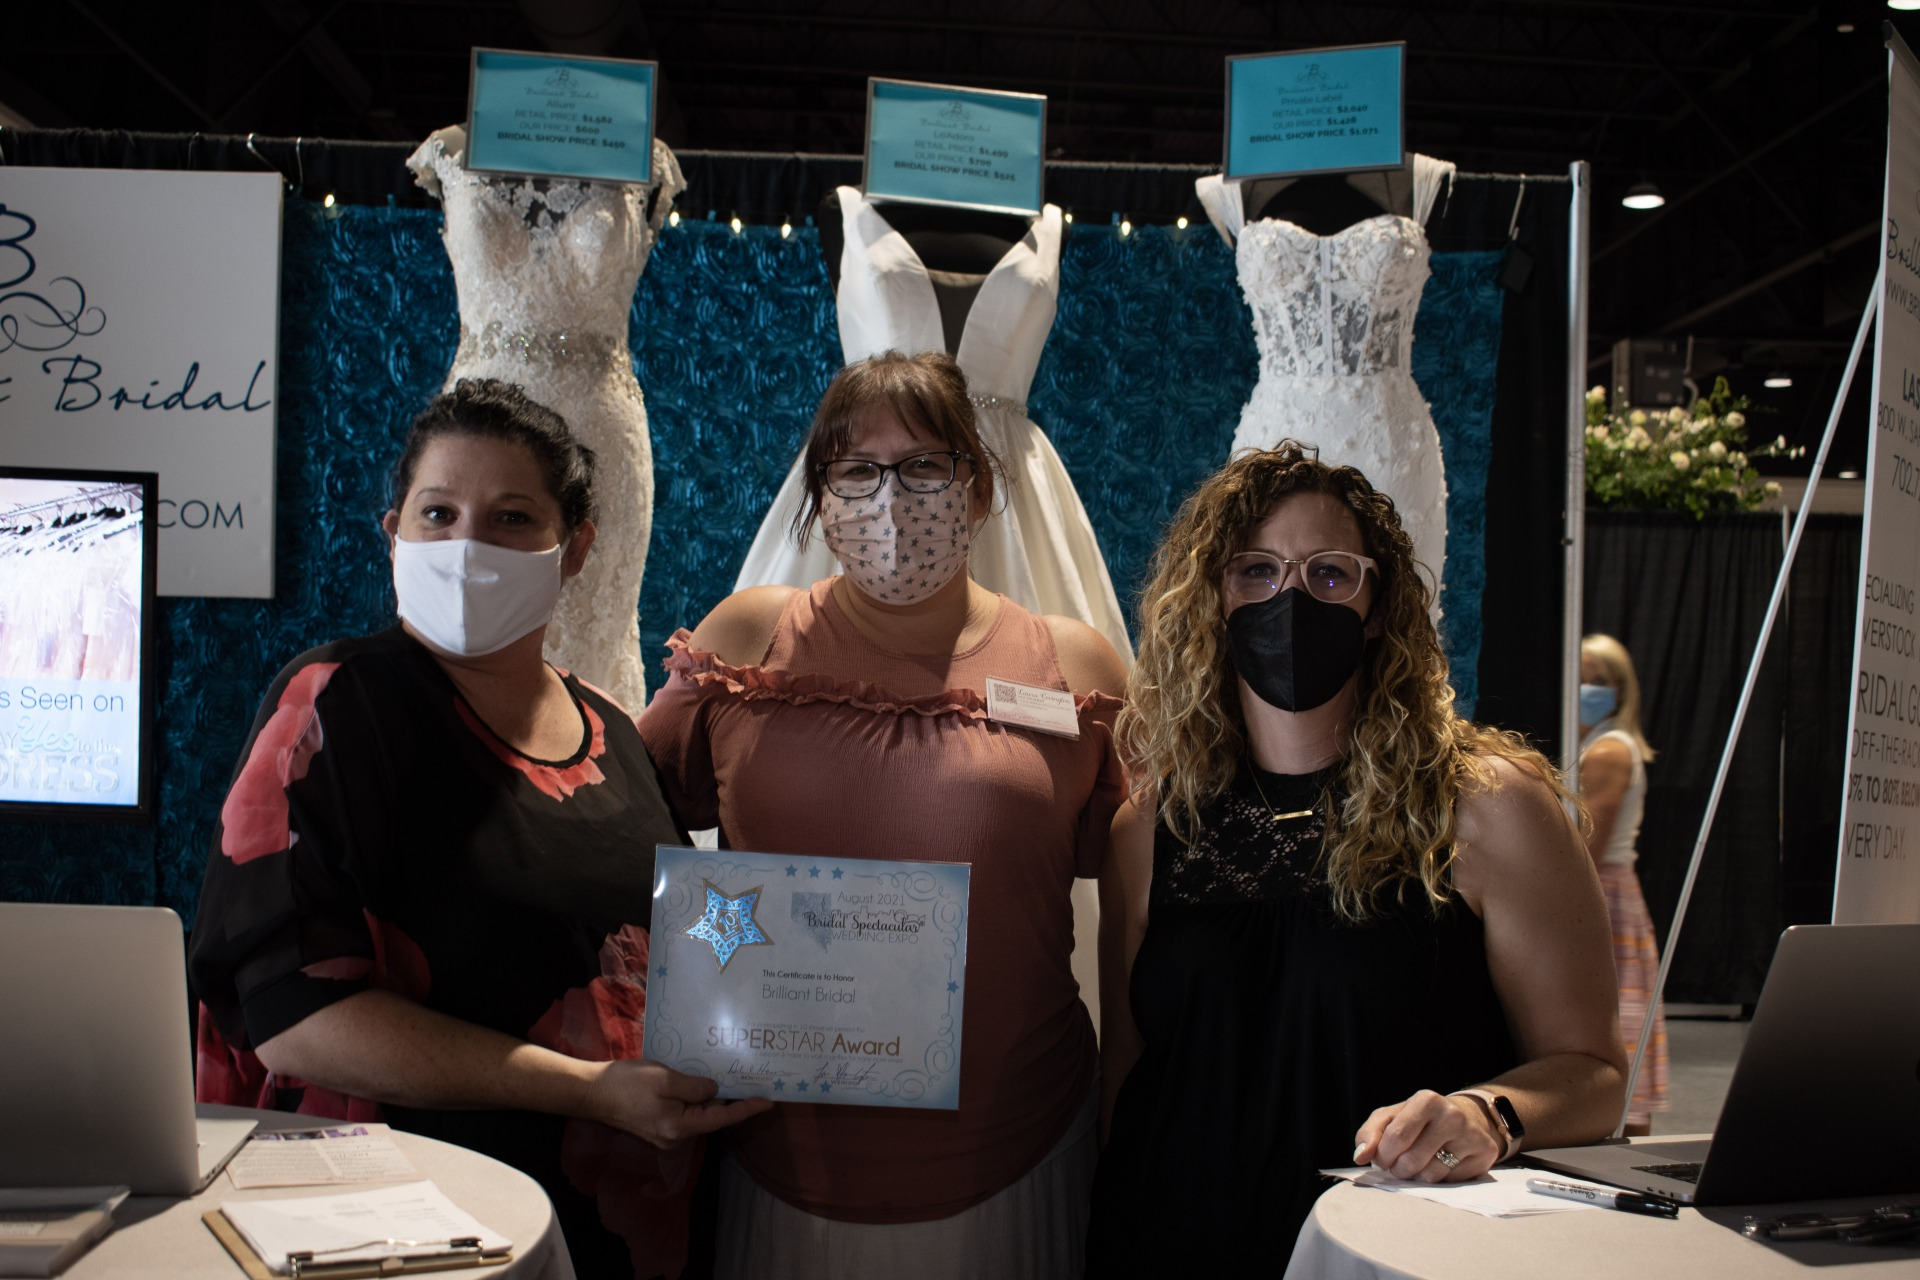 Brilliant Bridal Team members pose for a photo with their star award and Bridal Spectacular wedding expo VP Laura Covington, Las Vegas Wedding Professionals